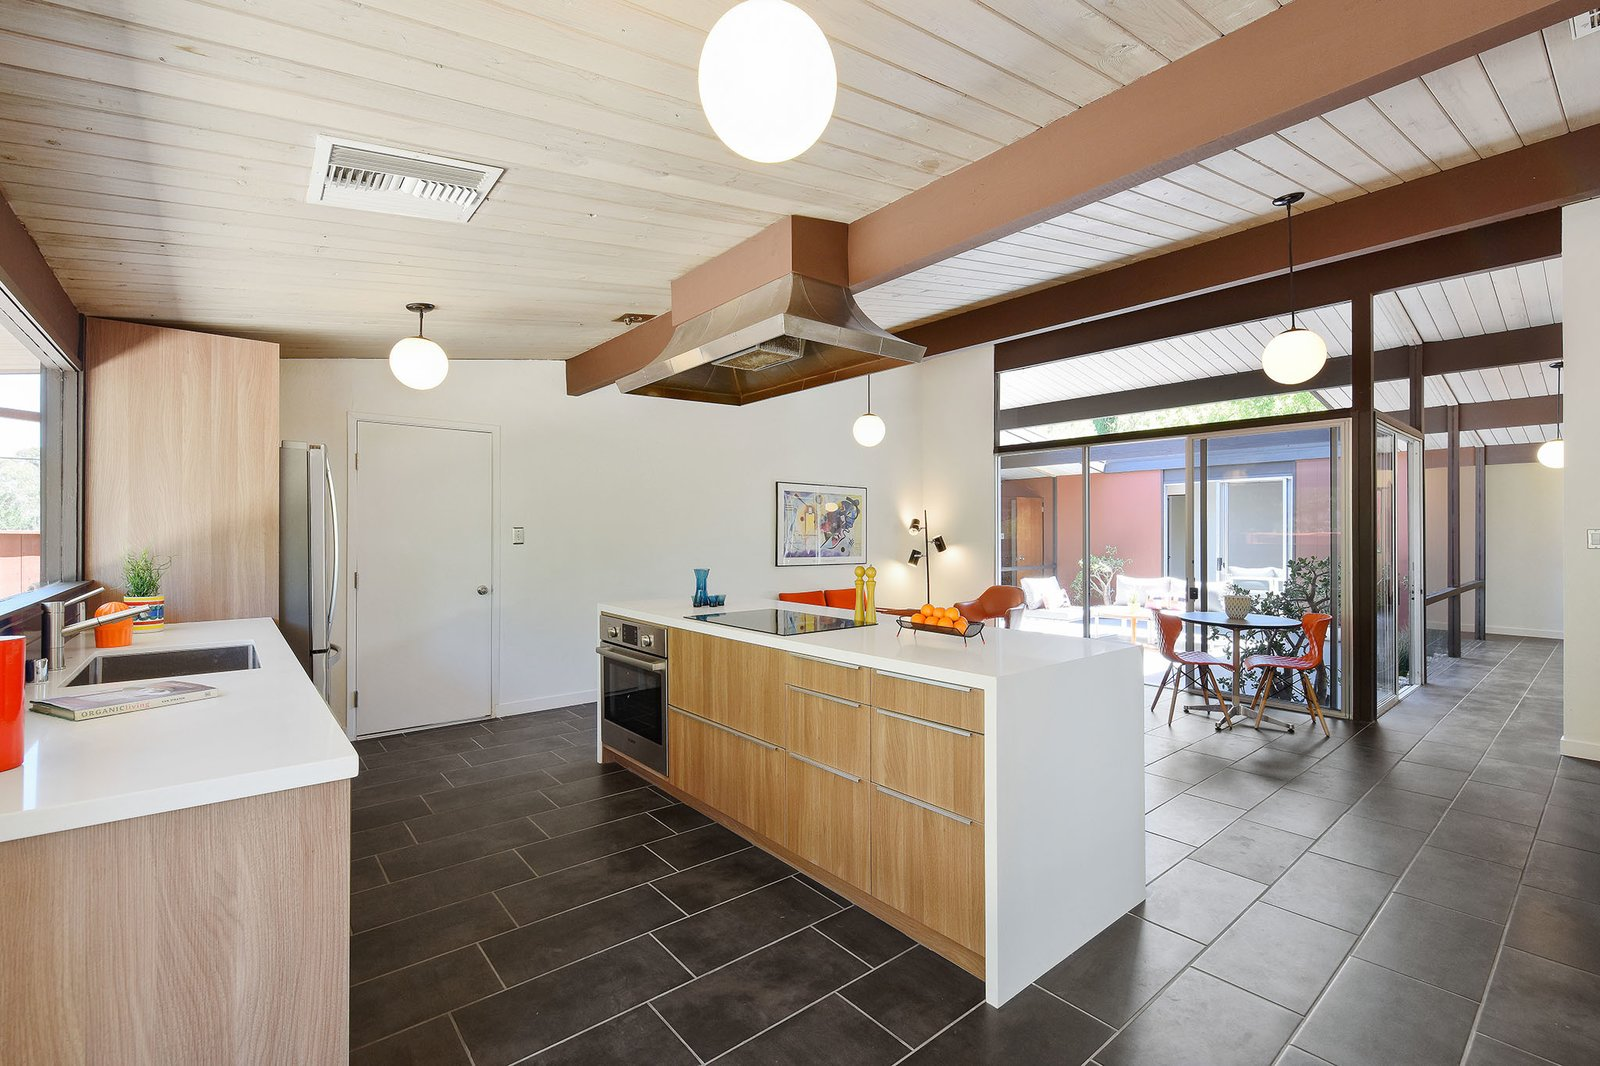 Kitchen, Drop In, Cooktops, Wood, Porcelain Tile, Pendant, Range Hood, and Wall Oven There is new porcelain tile flooring throughout.     Best Kitchen Cooktops Drop In Wall Oven Range Hood Pendant Photos from A Bright and Breezy Eichler Hits the Market at $1.45M in California